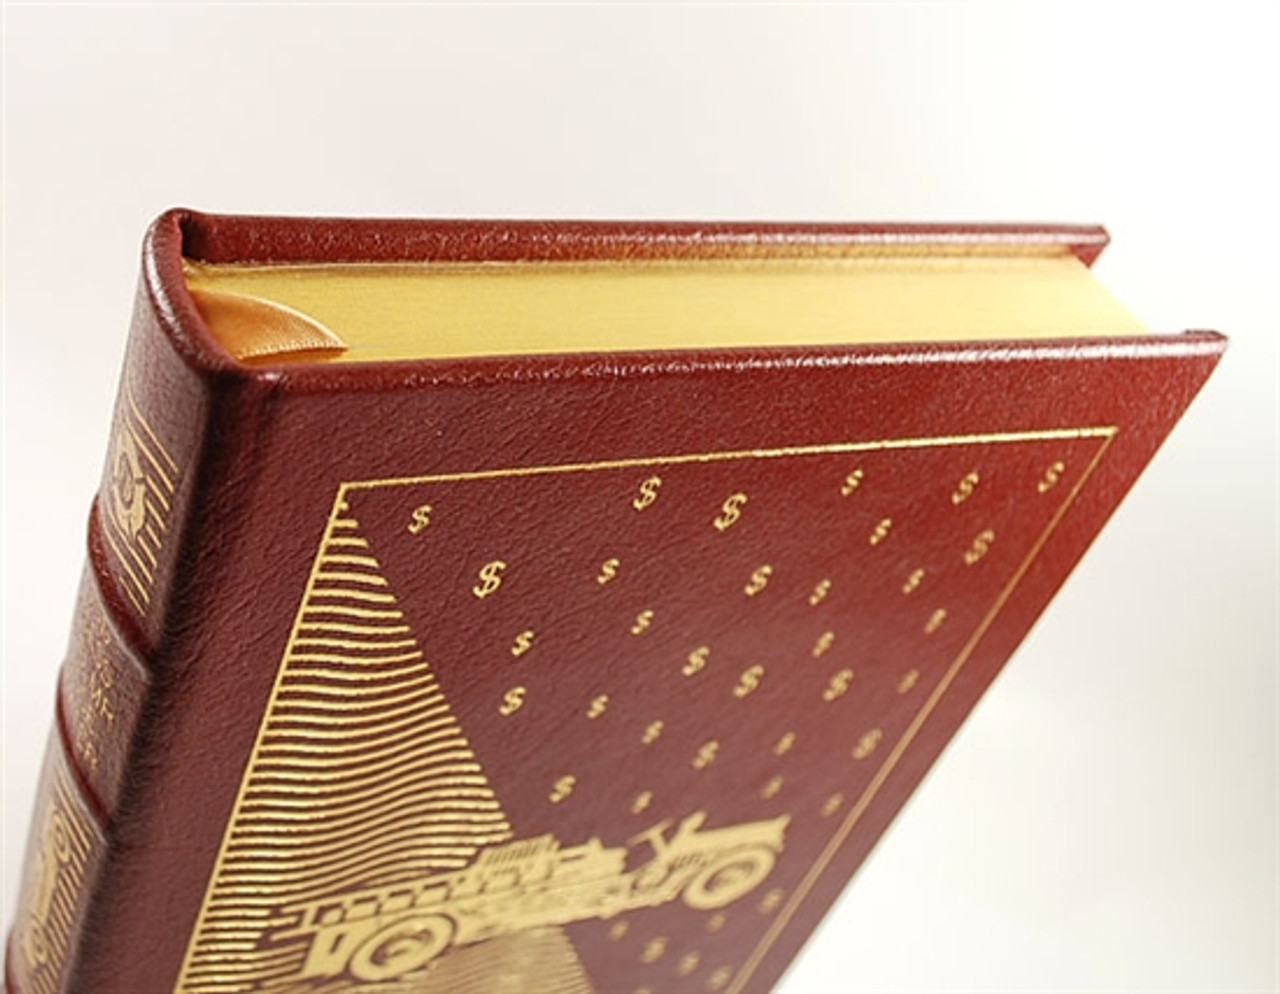 Easton Press Kurt Vonnegut God Bless Your Mr. Rosewater Signed Limited Edition Leather Bound Book